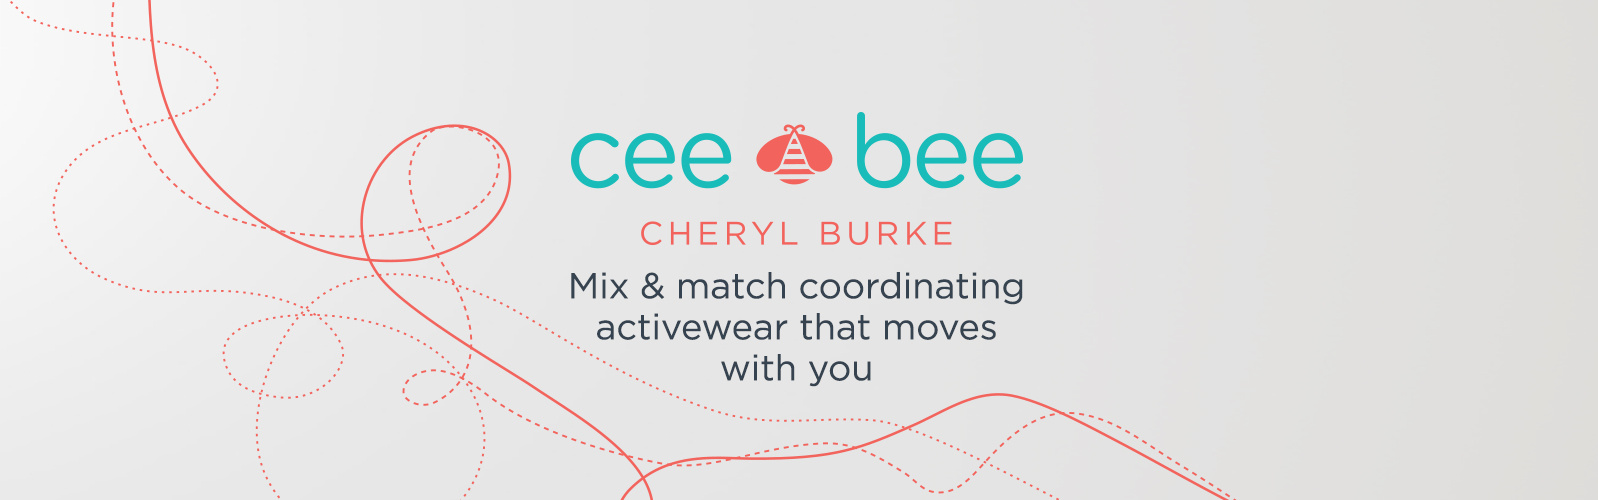 cee bee  Mix & match coordinating activewear that moves with you